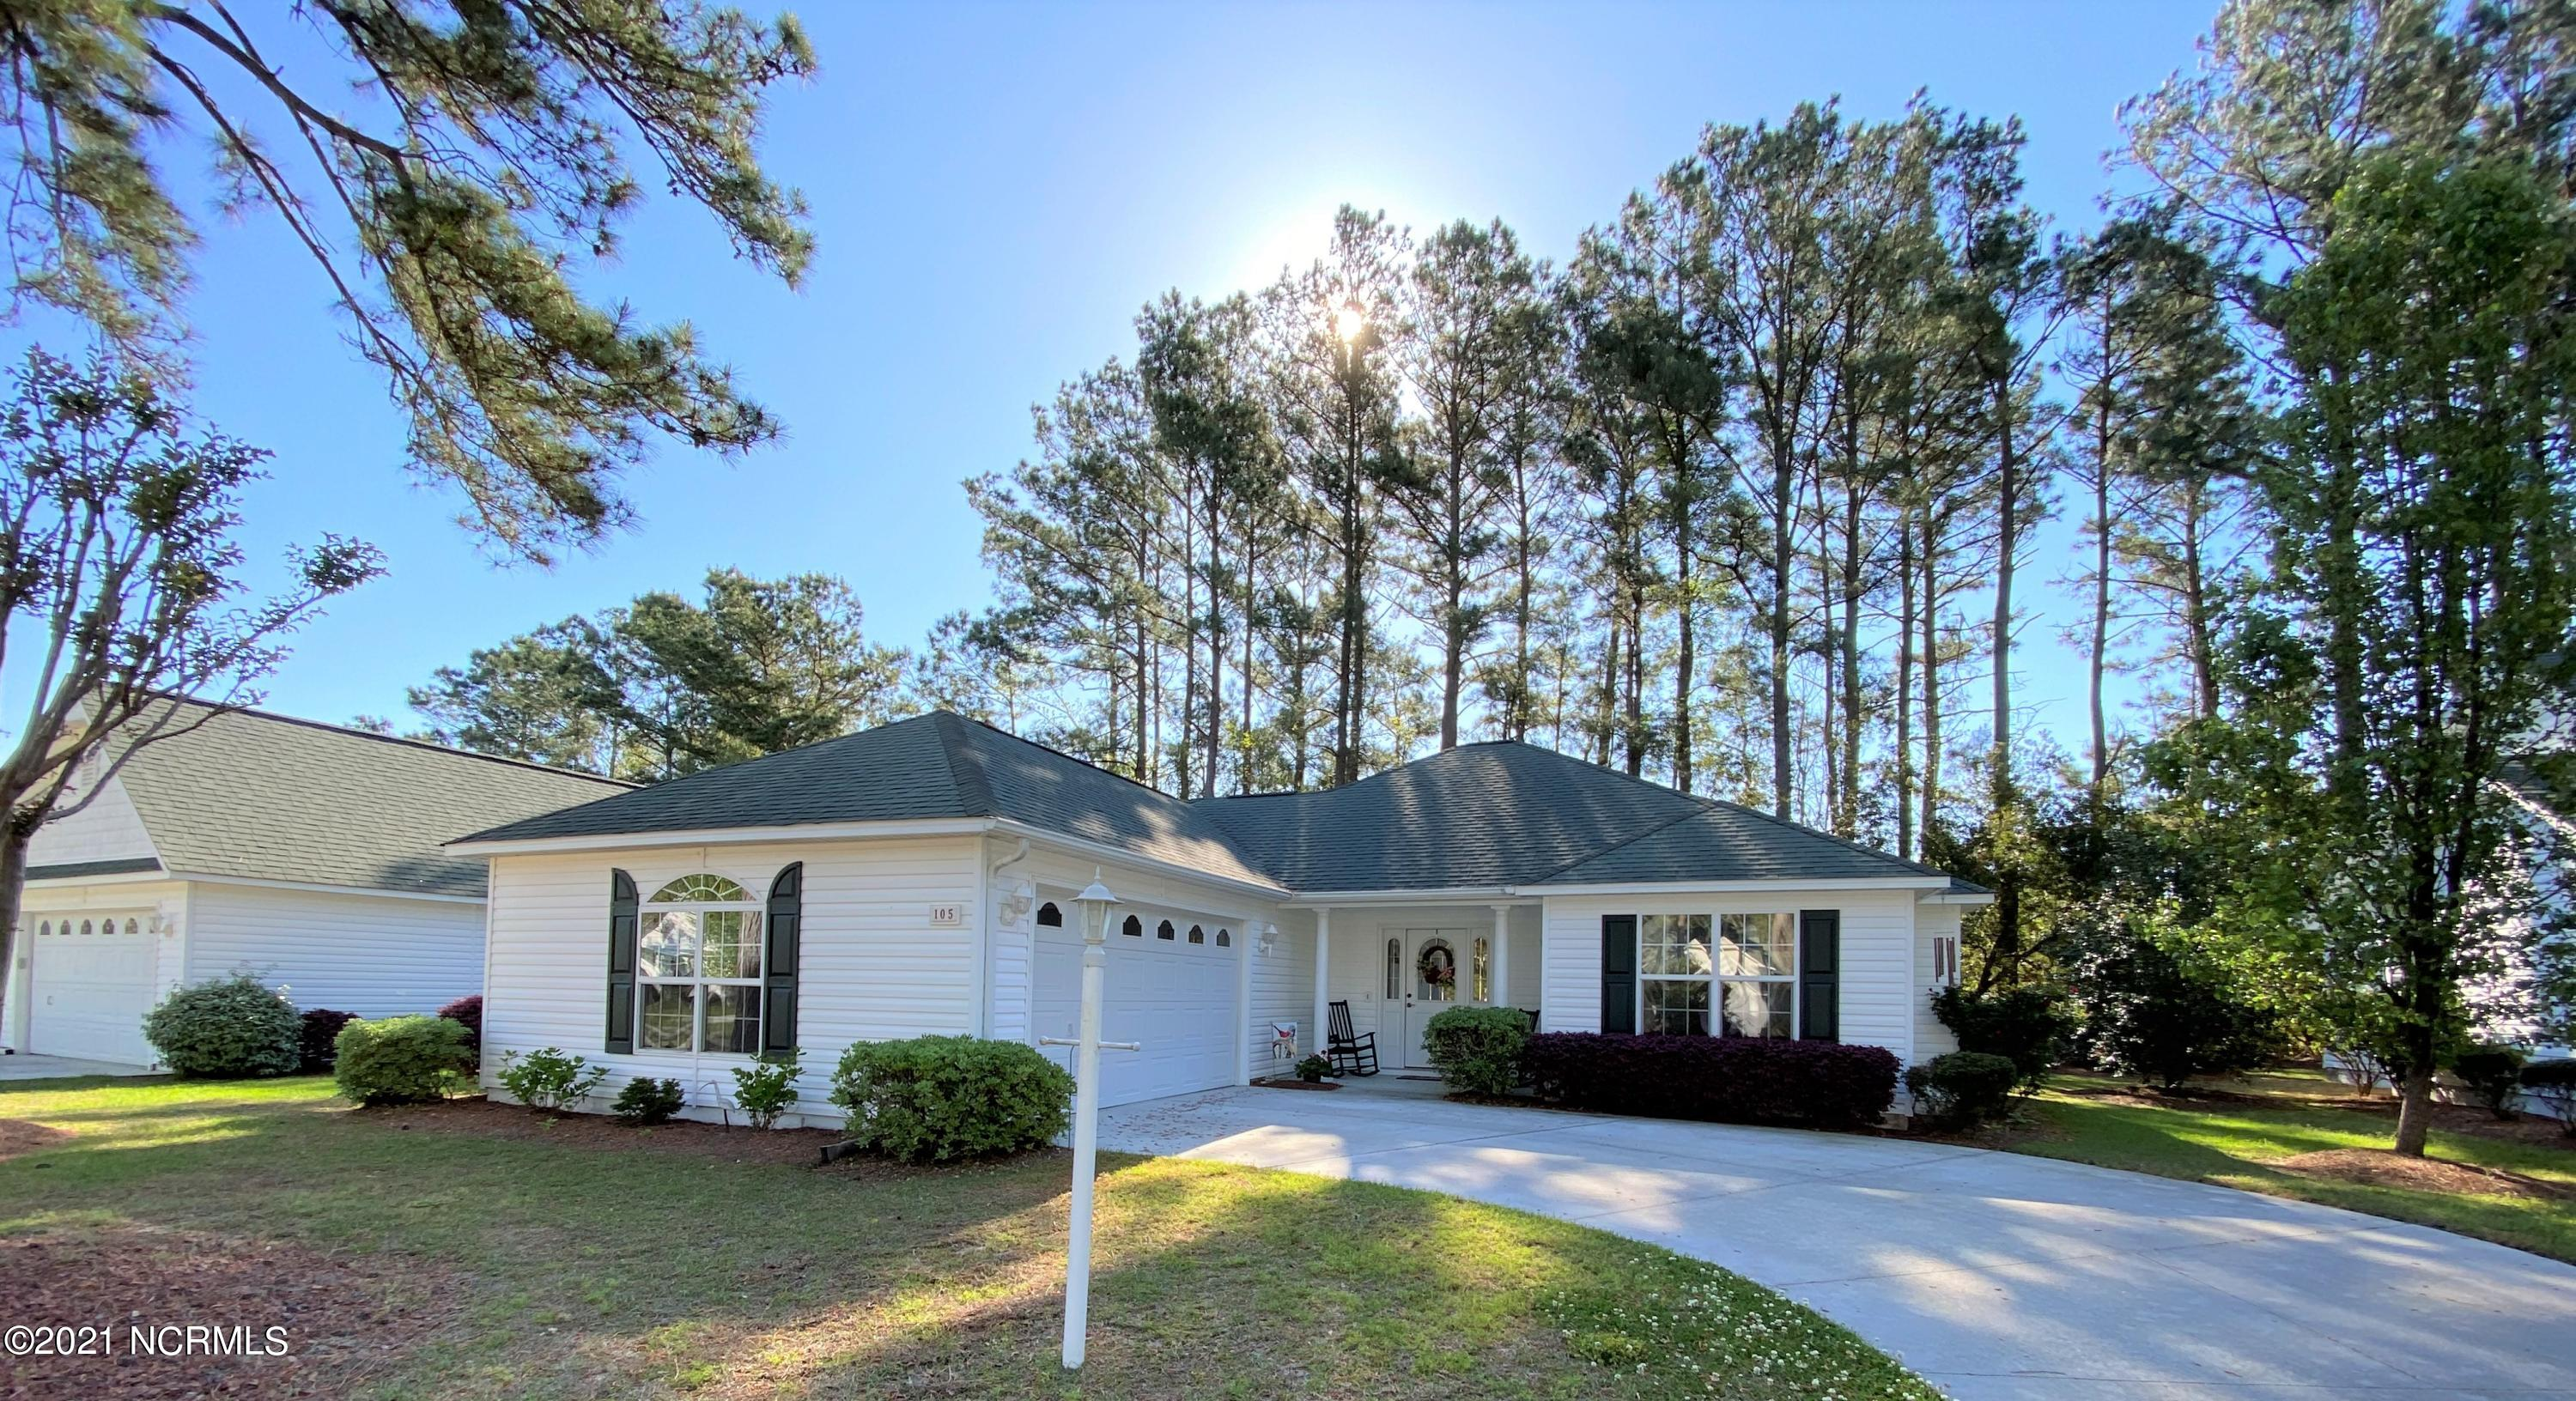 Popular 55 & older community of The Villages of Swansboro. Ownership is condominium set up so HOA maintains exterior of homes, yards, & common areas ($245 month)  Pristine 2 bedroom, 2 bathroom home with many updates throughout....recent painting, flooring including laminate/tile/carpet, kitchen granite countertops & tile backsplash, fixtures, master bathroom custom tile shower and more.  All appliances & window treatments convey.  Nice gas log fireplace too! Enjoy a nice screened porch off the kitchen/dining area!  Double garage with cabinets for storage. Original owner has given this home a lot of TLC!